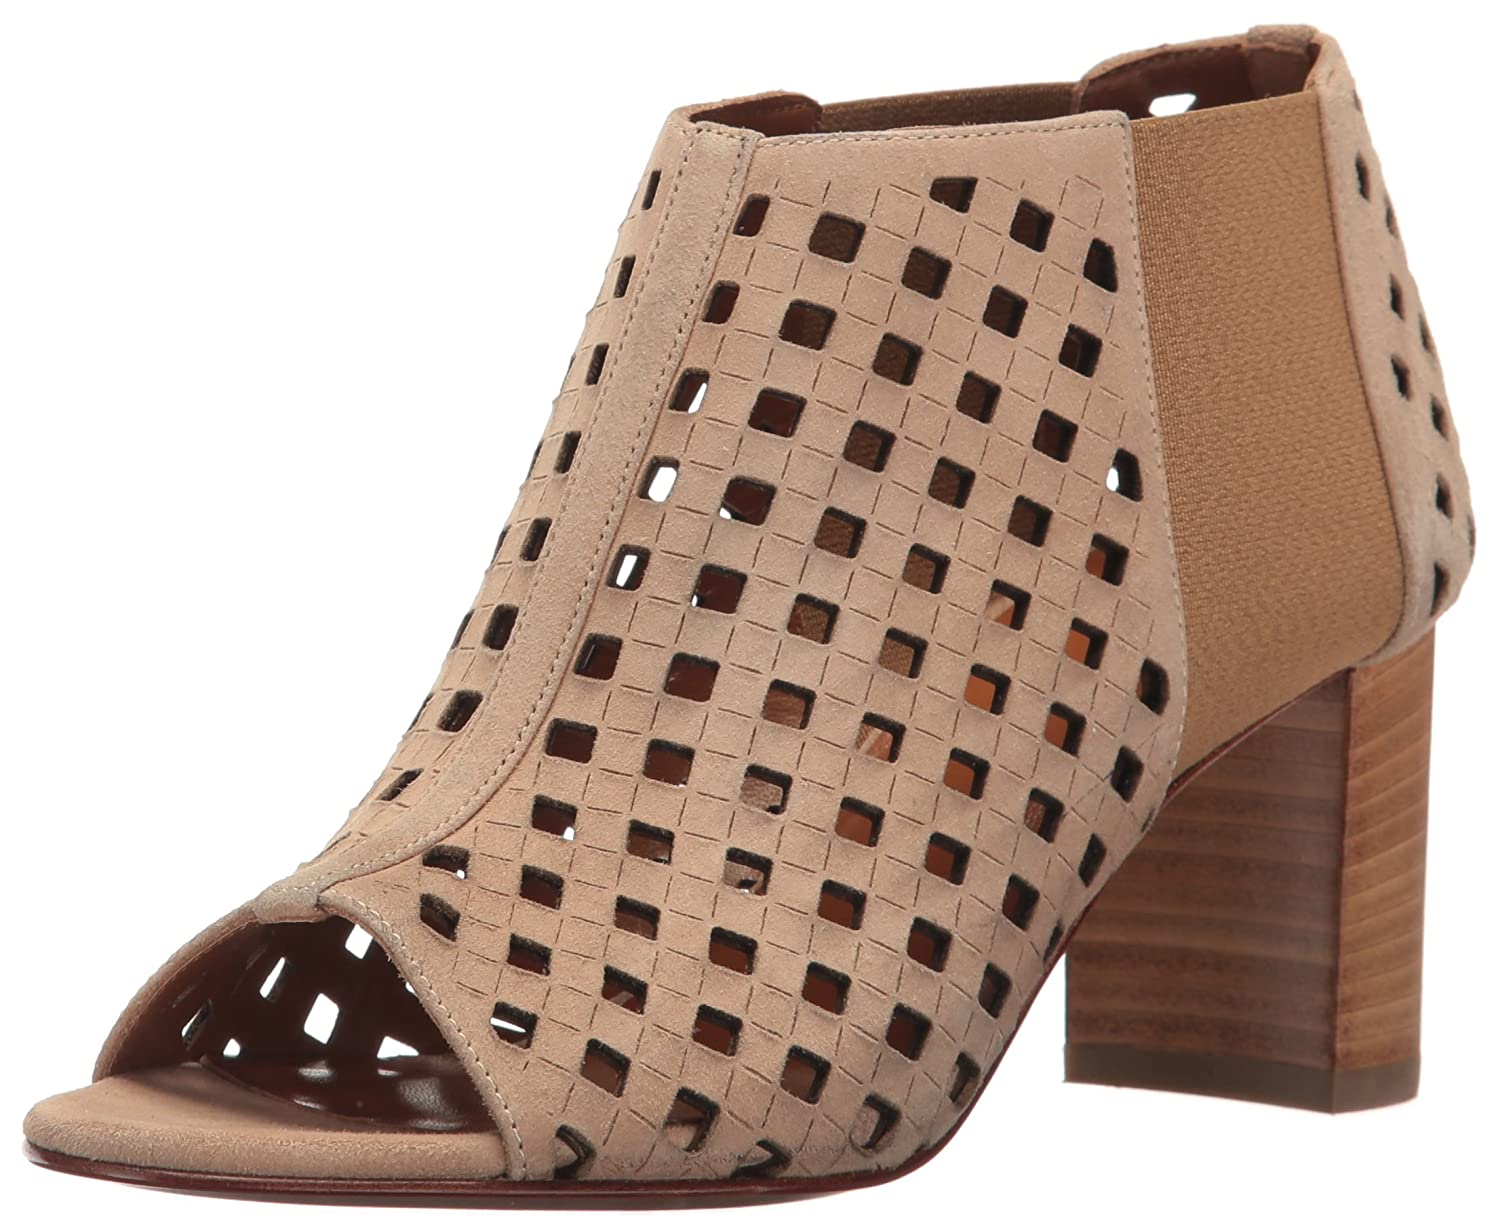 Aquatalia by Marvin K. Women's Shari Perforated Suede Ankle Bootie B01N74UU25 7 B(M) US|Nude